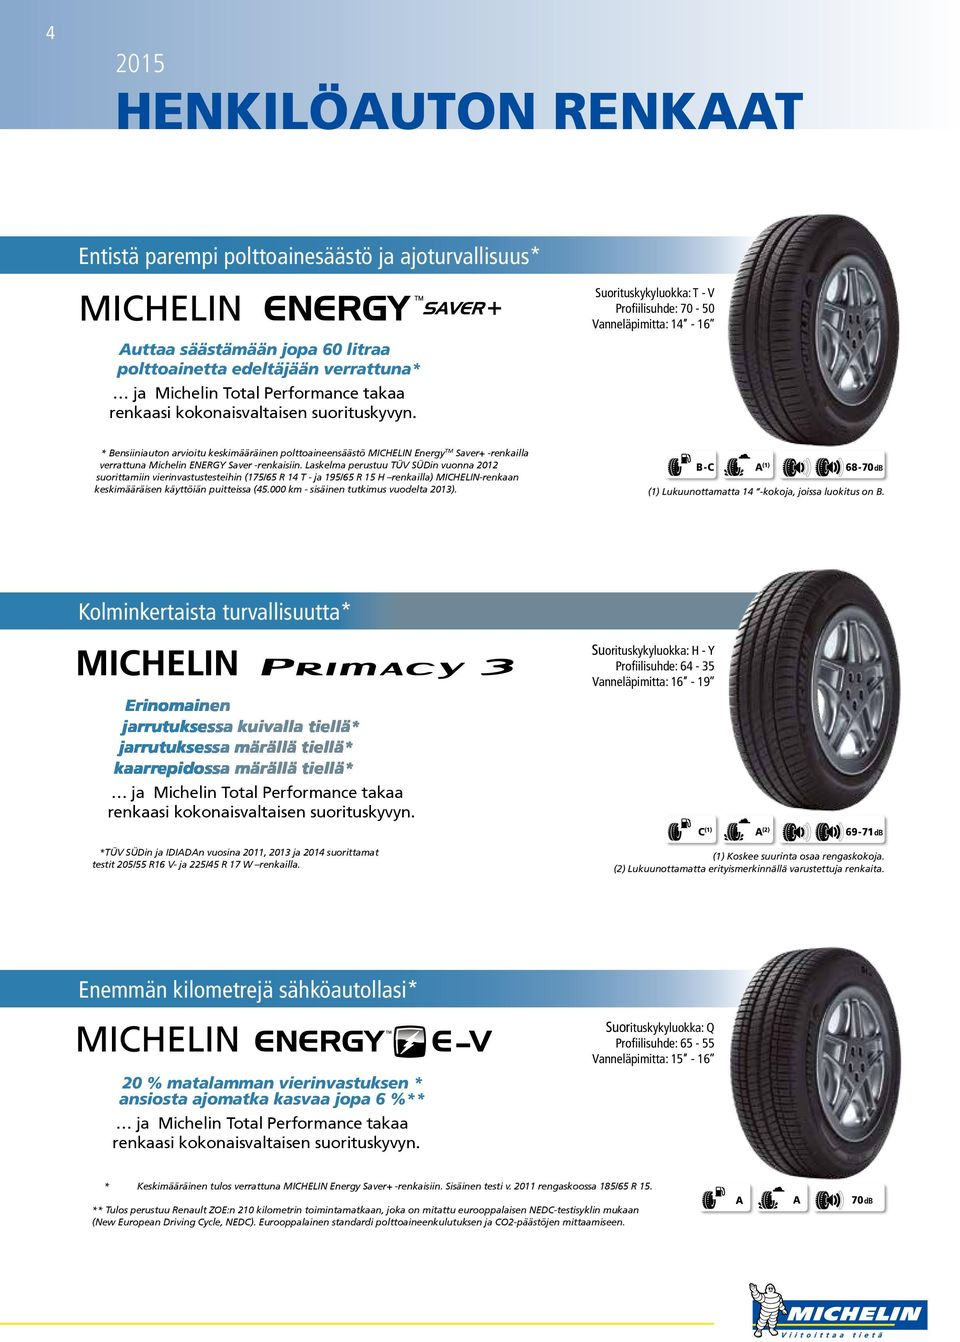 * Bensiiniauton arvioitu keskimääräinen polttoaineensäästö MICHELIN Energy TM Saver+ -renkailla verrattuna Michelin ENERGY Saver -renkaisiin.